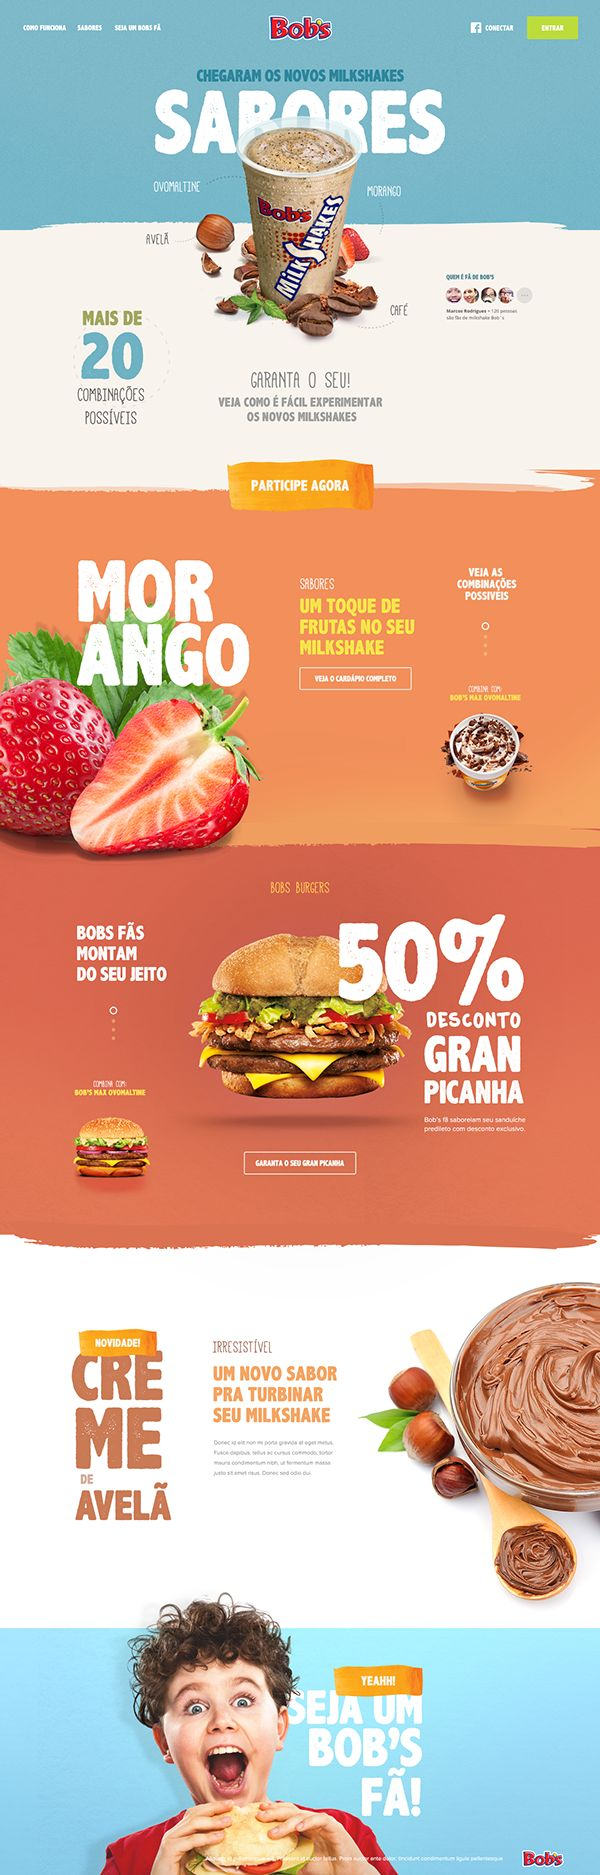 Food delicious Ui design concept and branding style.